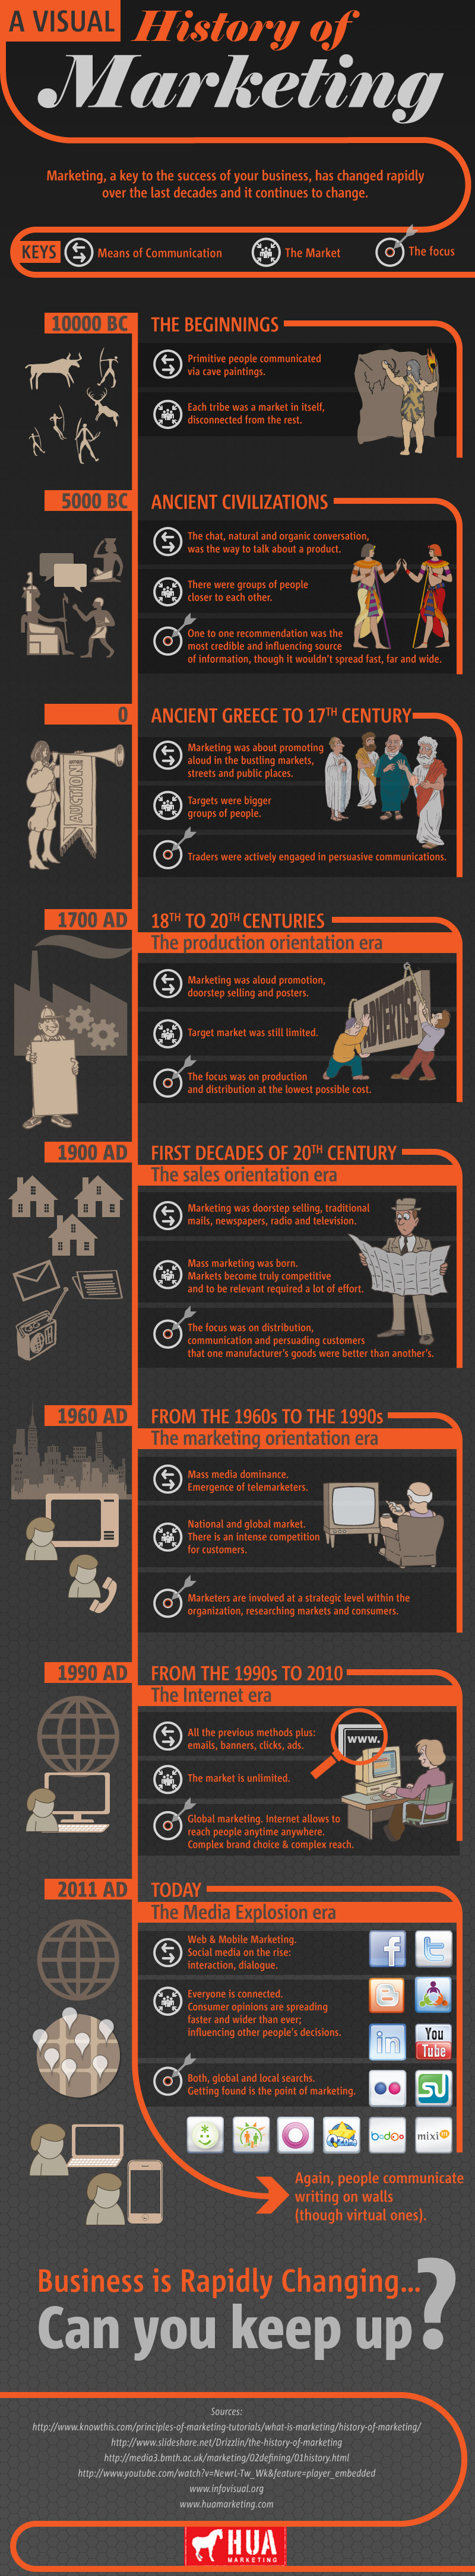 a history of marketing